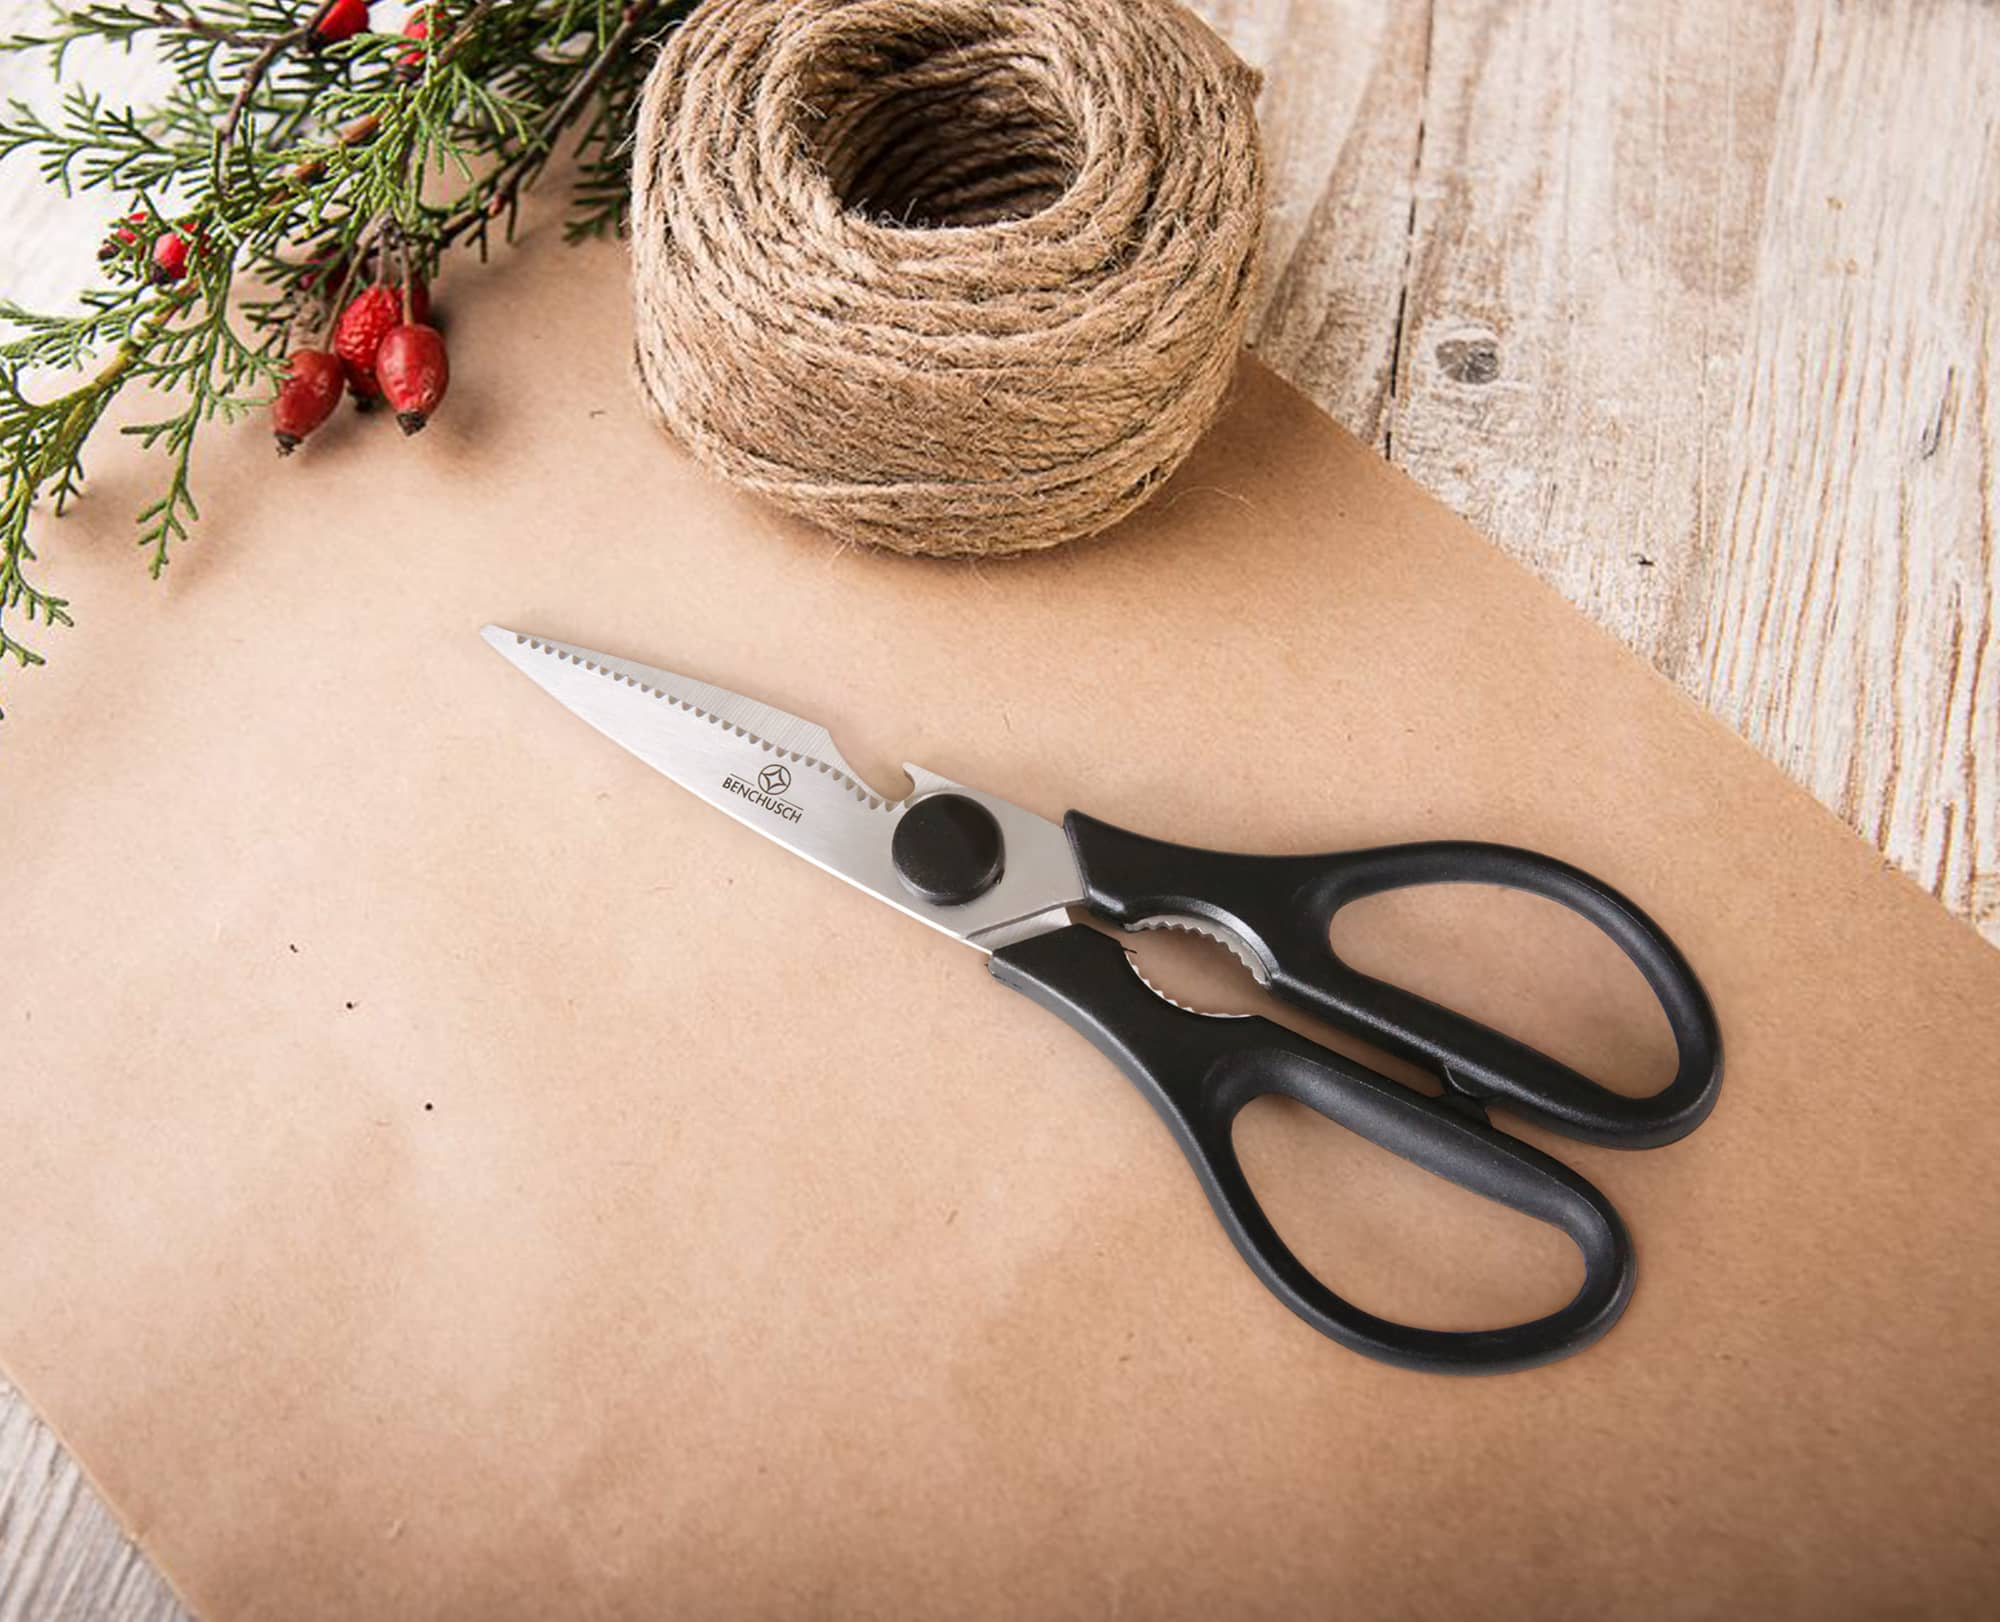 Benchusch Classic 8-Inch Scissors with paper, rope on the christmas background